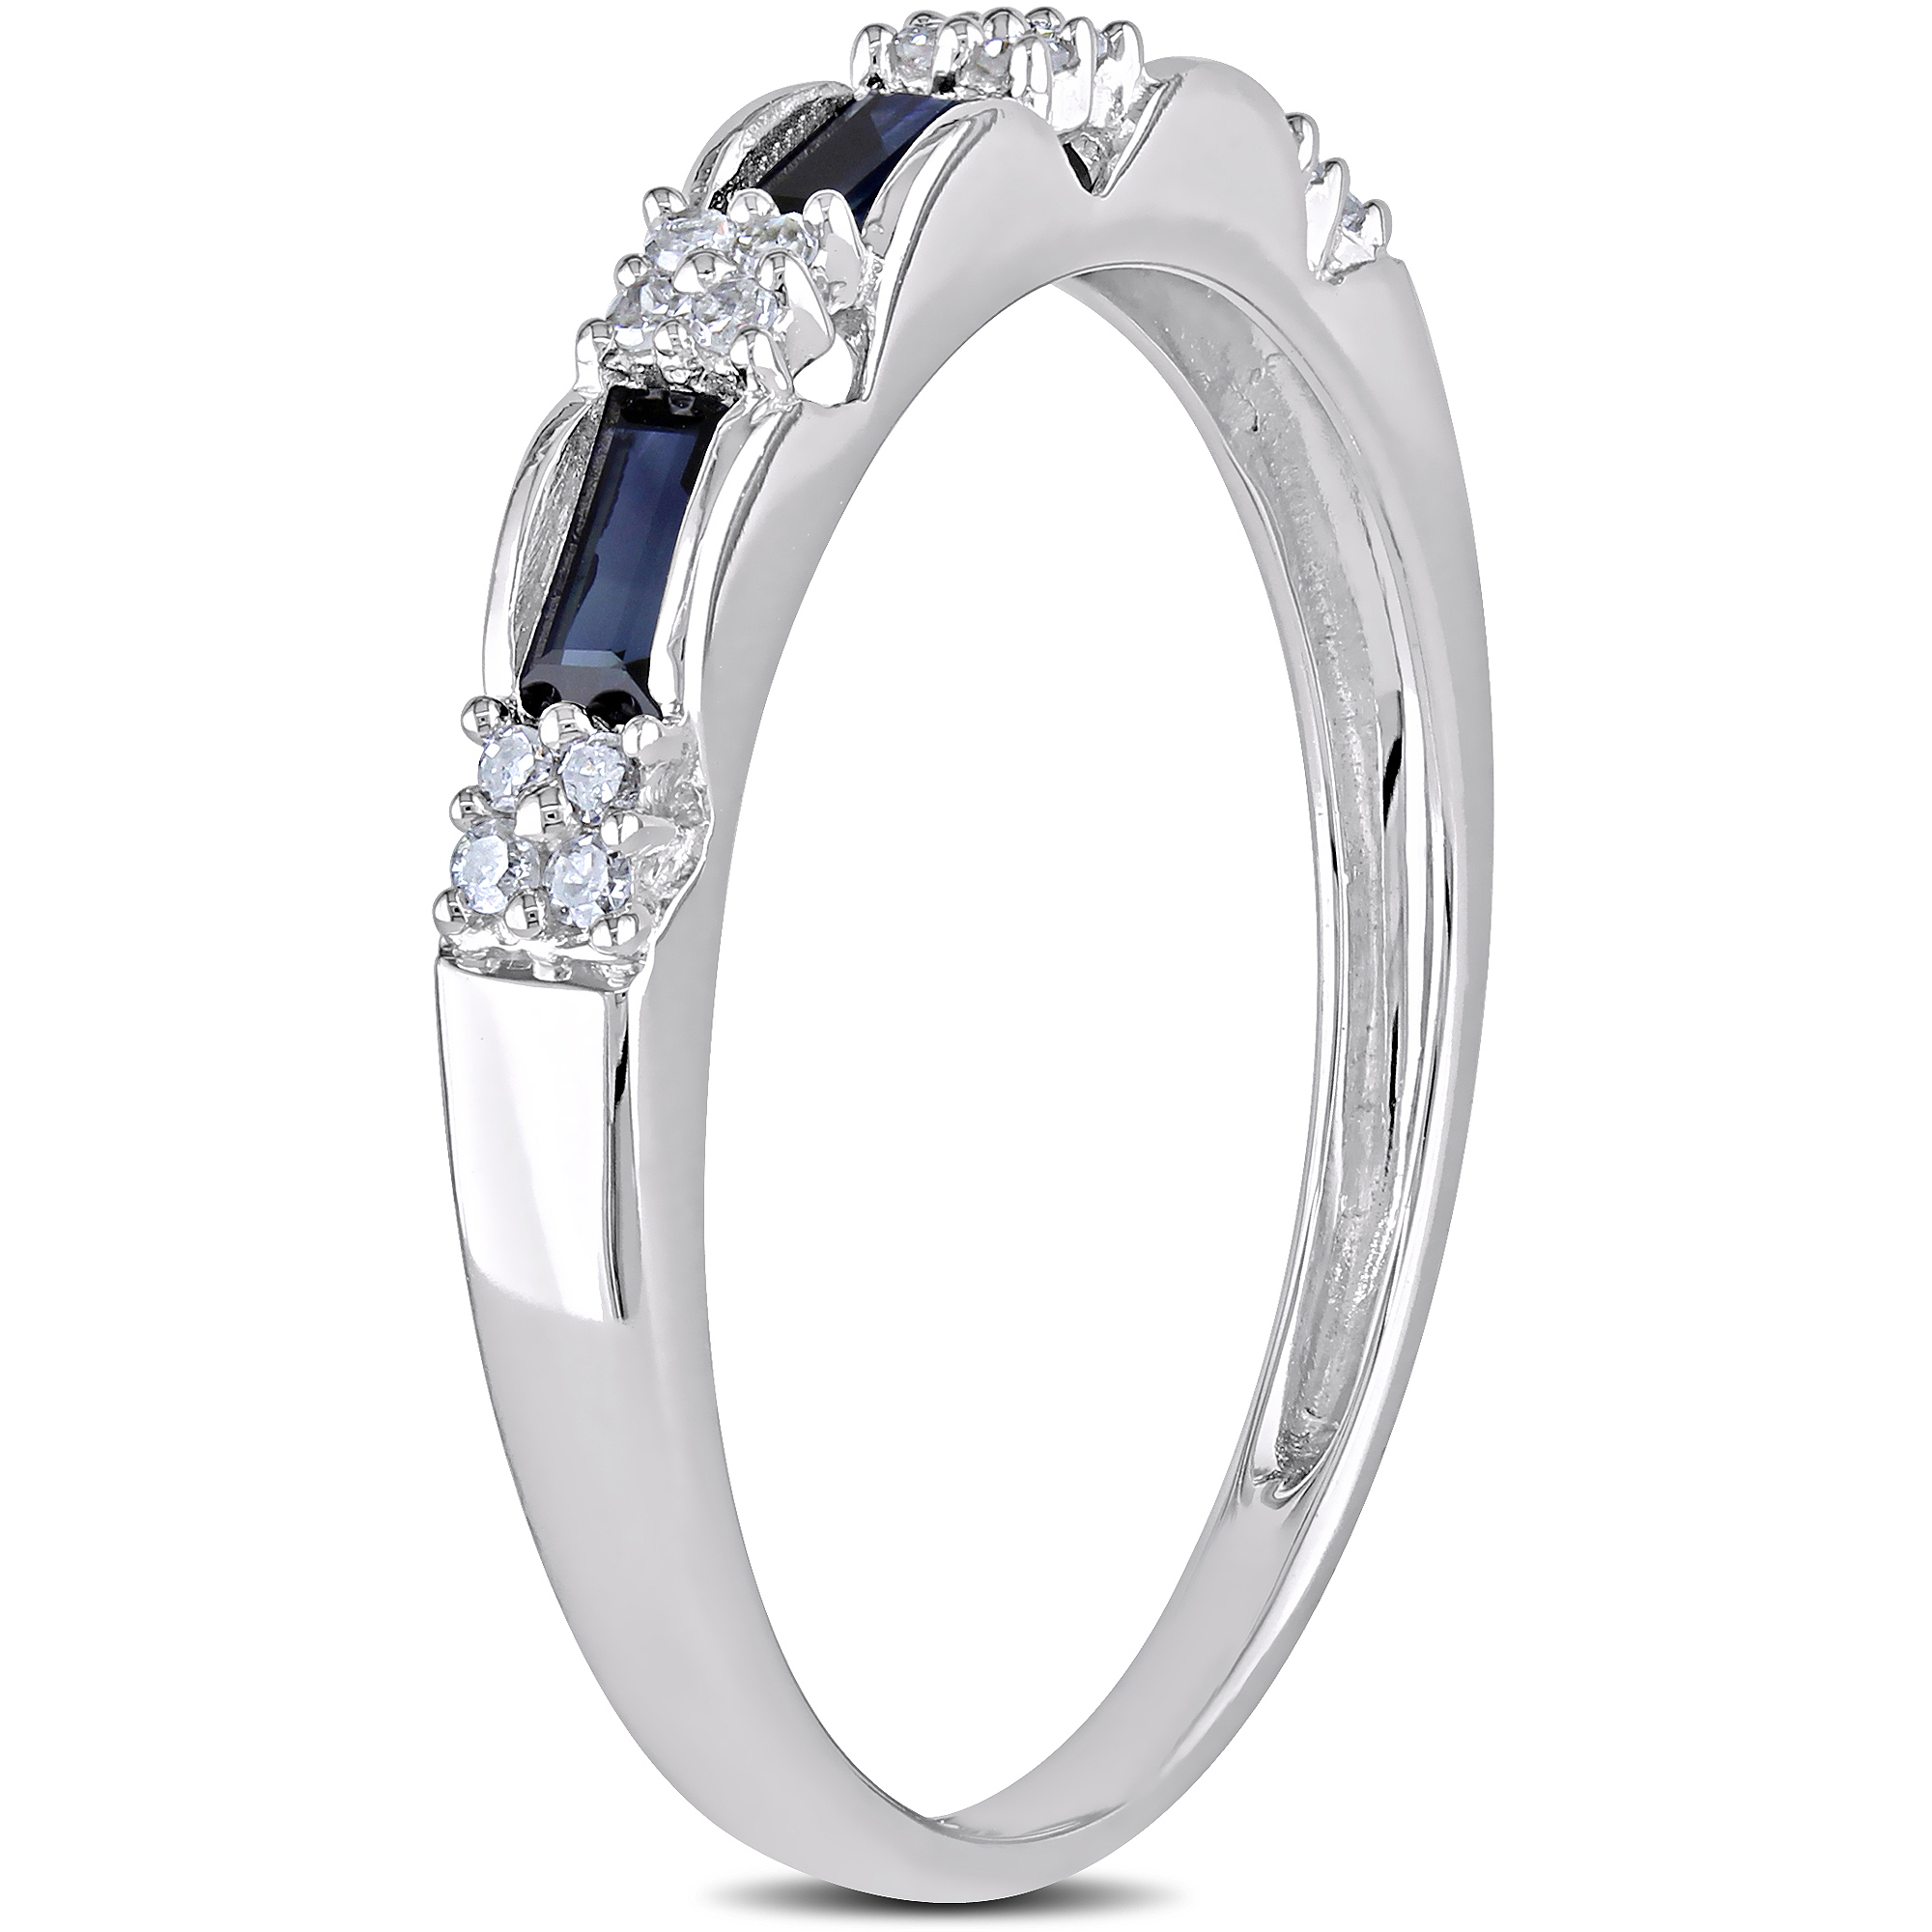 1 2 Carat T.G.W. Baguette-Cut Sapphire and Diamond-Accent 10kt White Gold Semi-Eternity Ring by